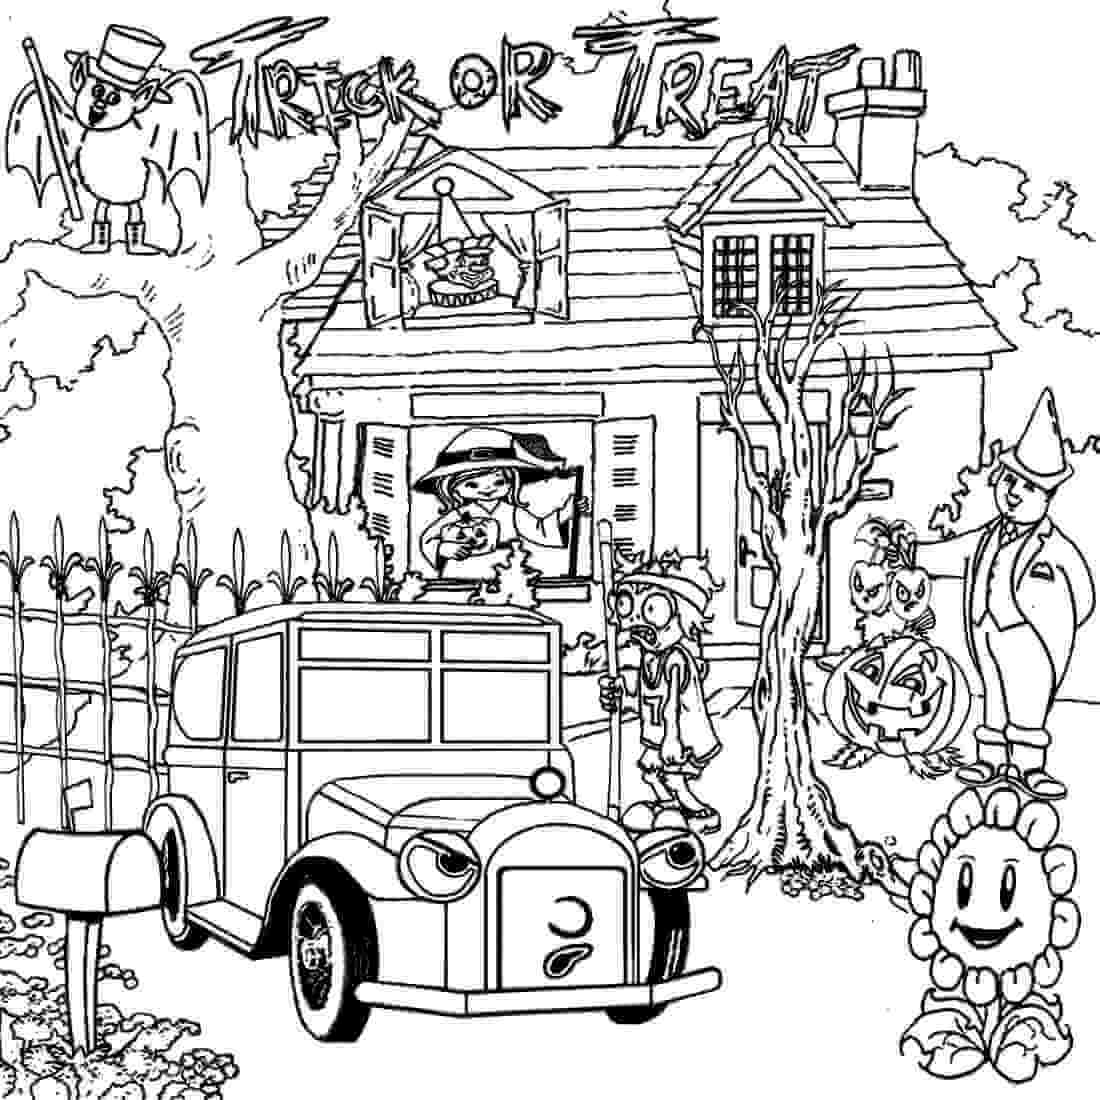 Trick Or Treat Haunted House Coloring Page